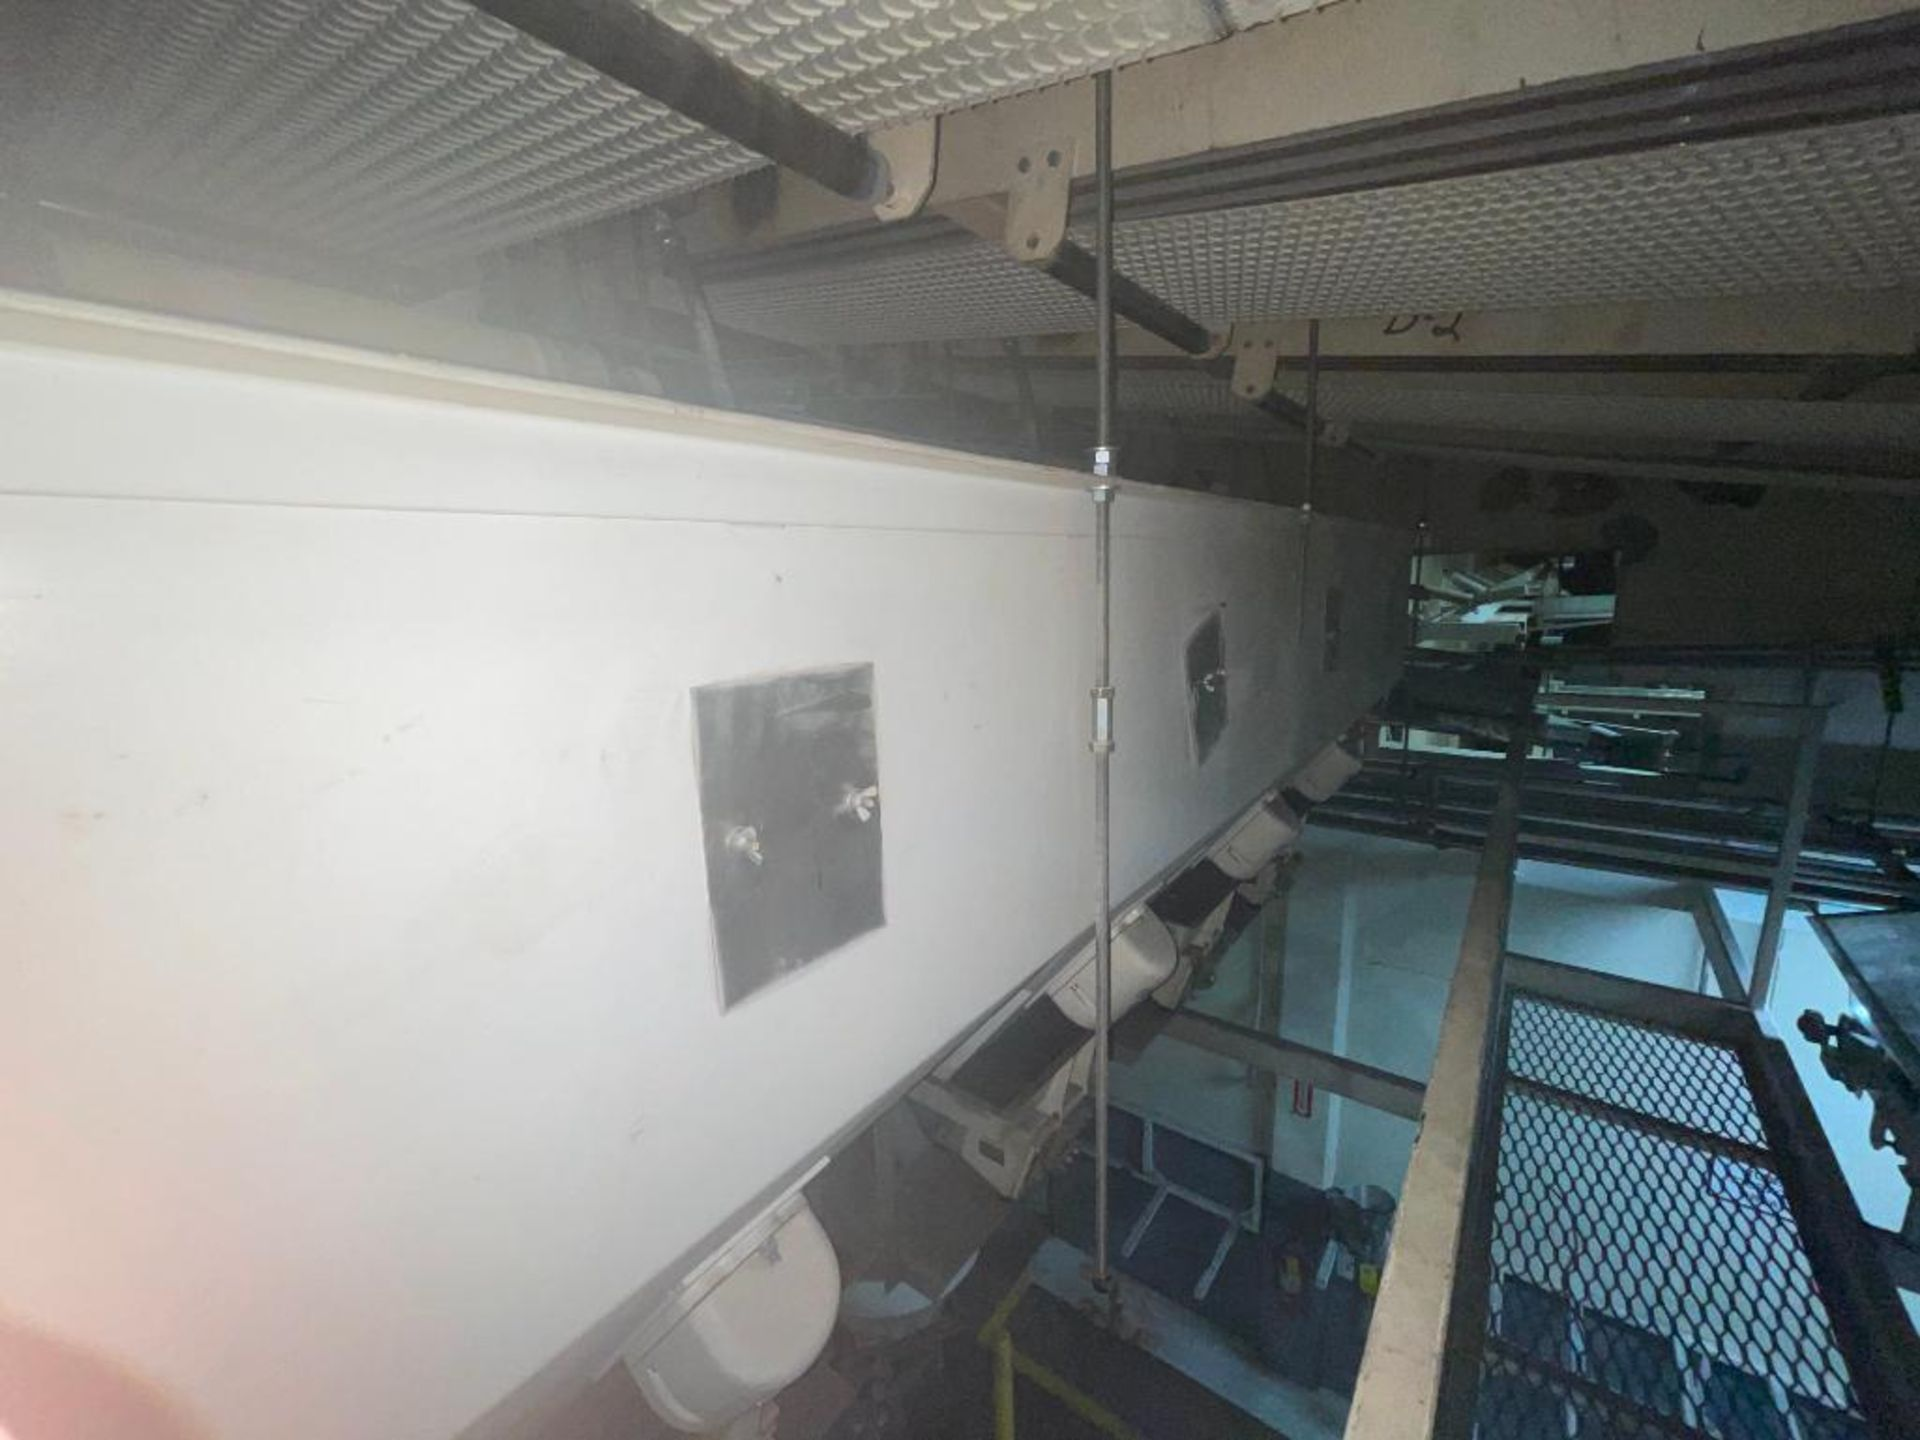 Aseeco 5-bin blending system with 5 Syntron vibratory feeders on bottom - Image 11 of 18